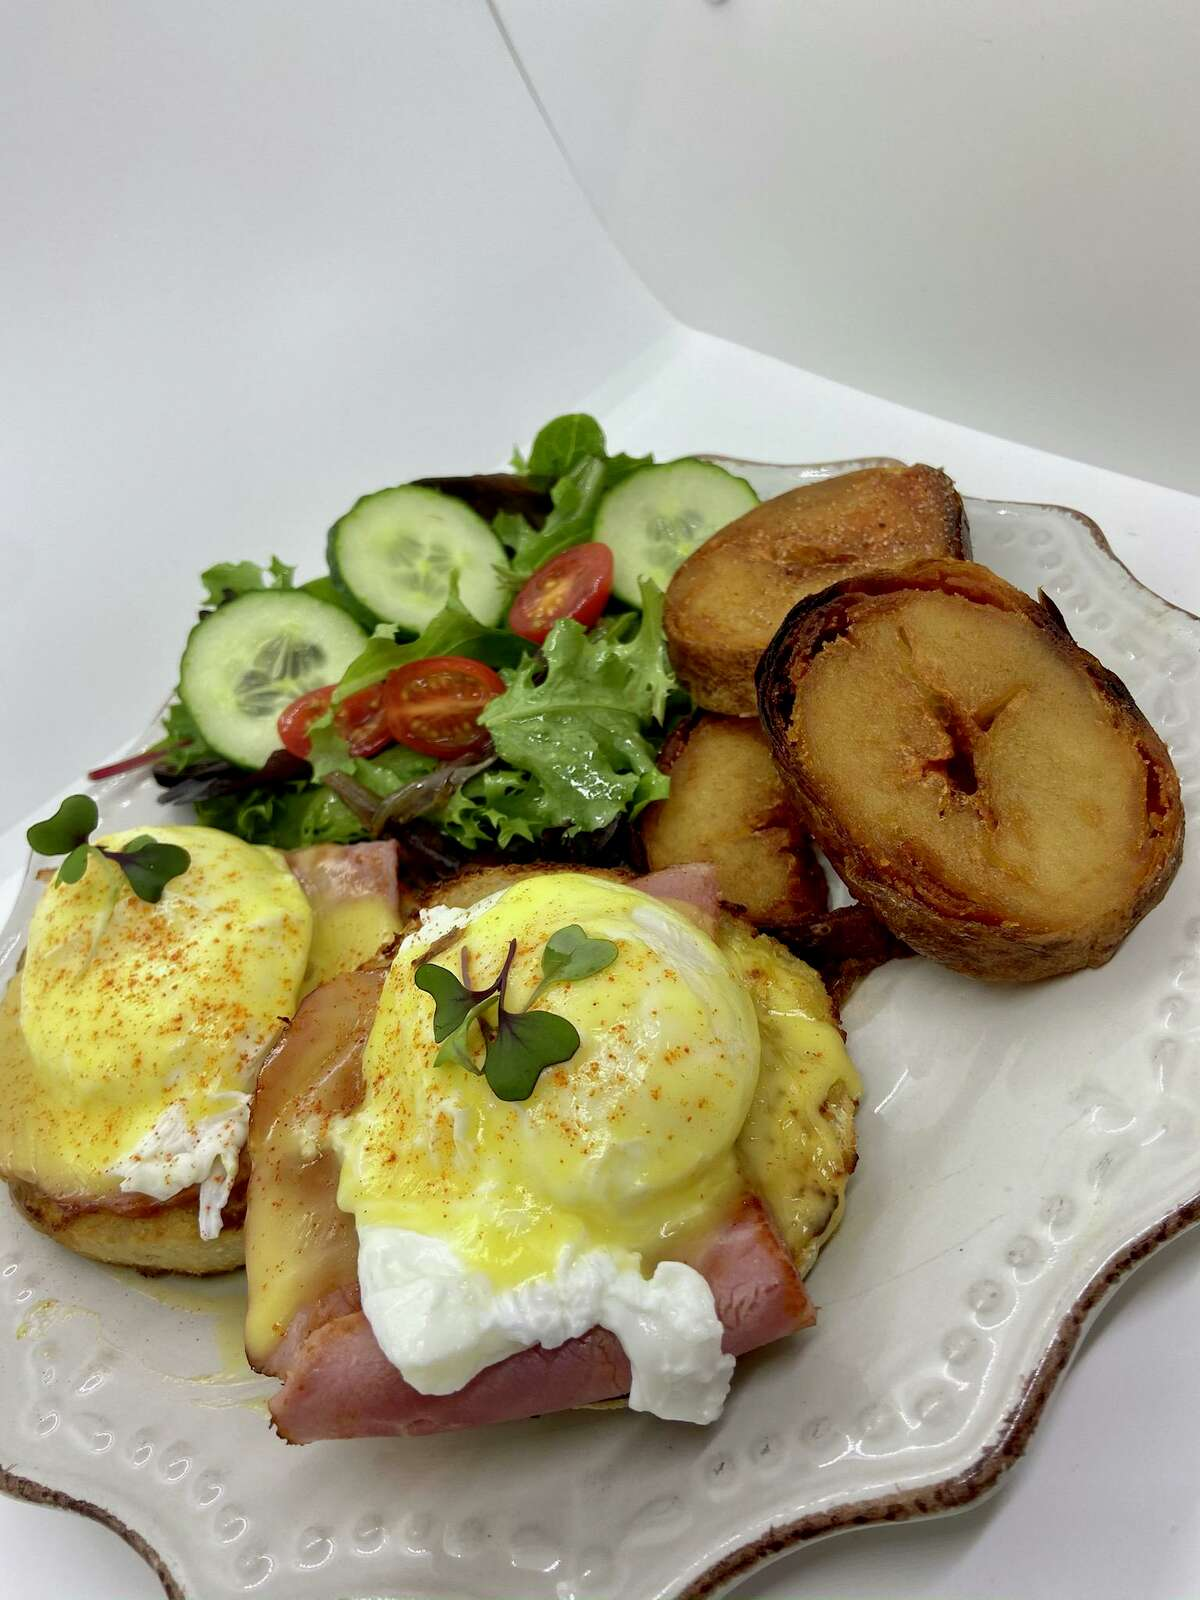 Harvest Kitchen & Bakery is located at 21971 Katy Freeway in Katy and serves a variety of gourmet dishes like this Eggs Benedict.